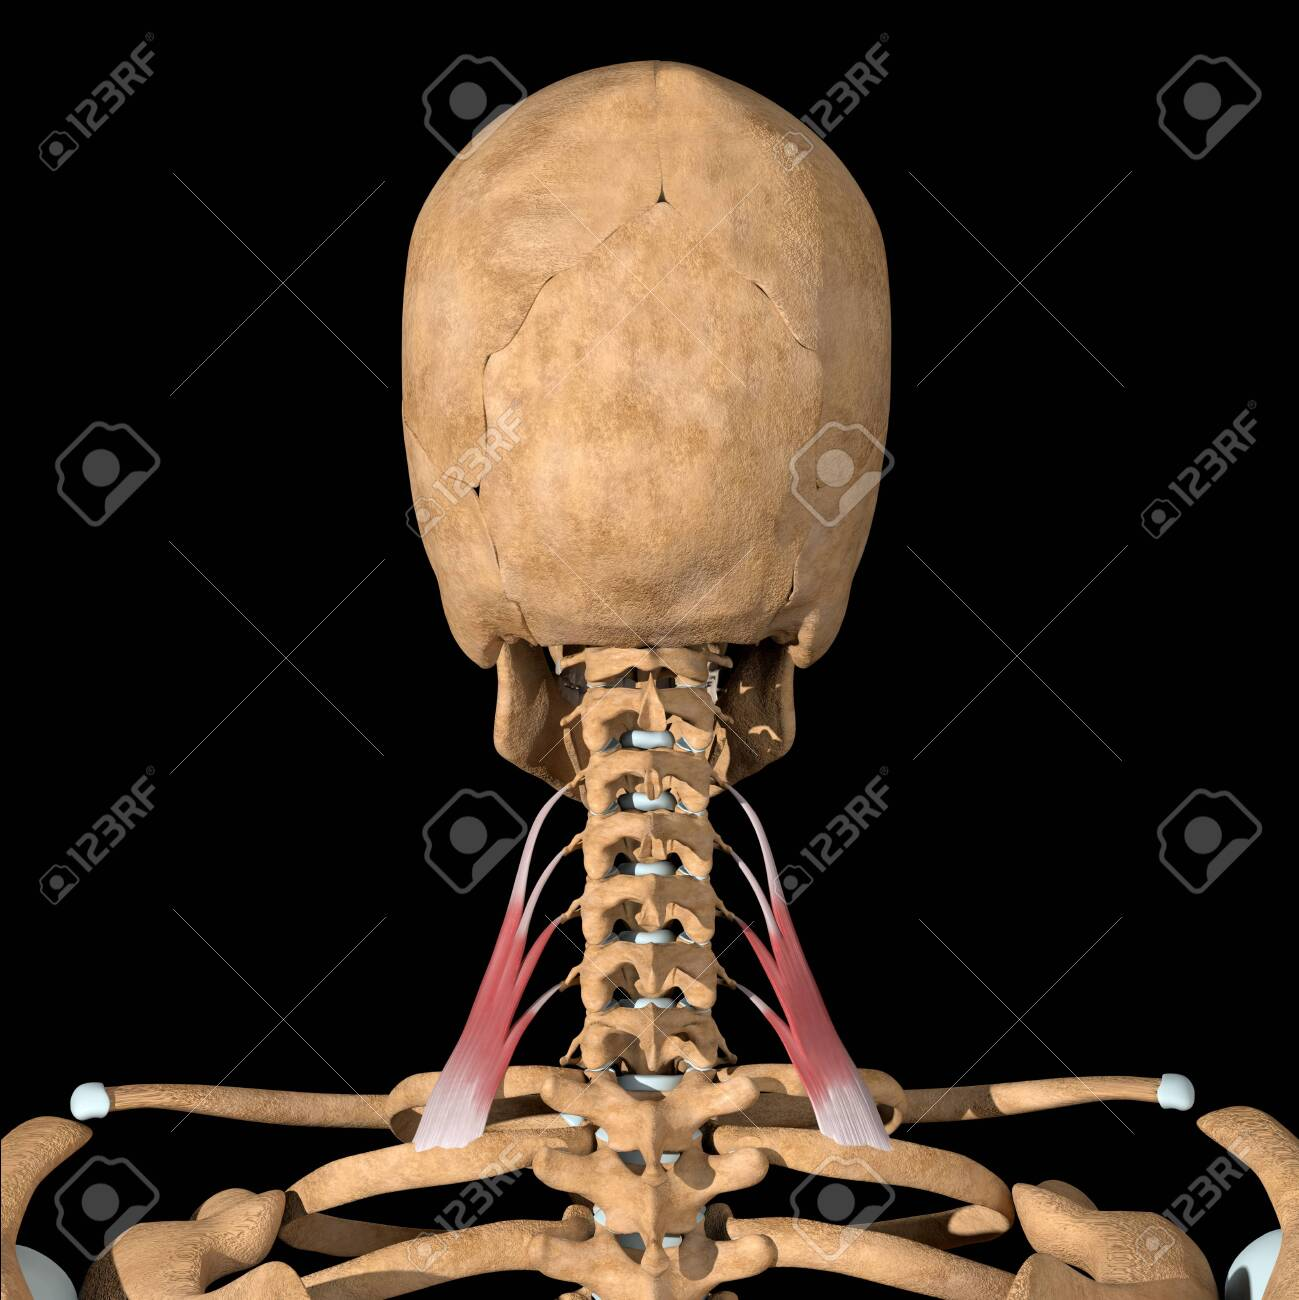 This 3d illustration shows the scalene posterior muscles on skeleton - 142140506